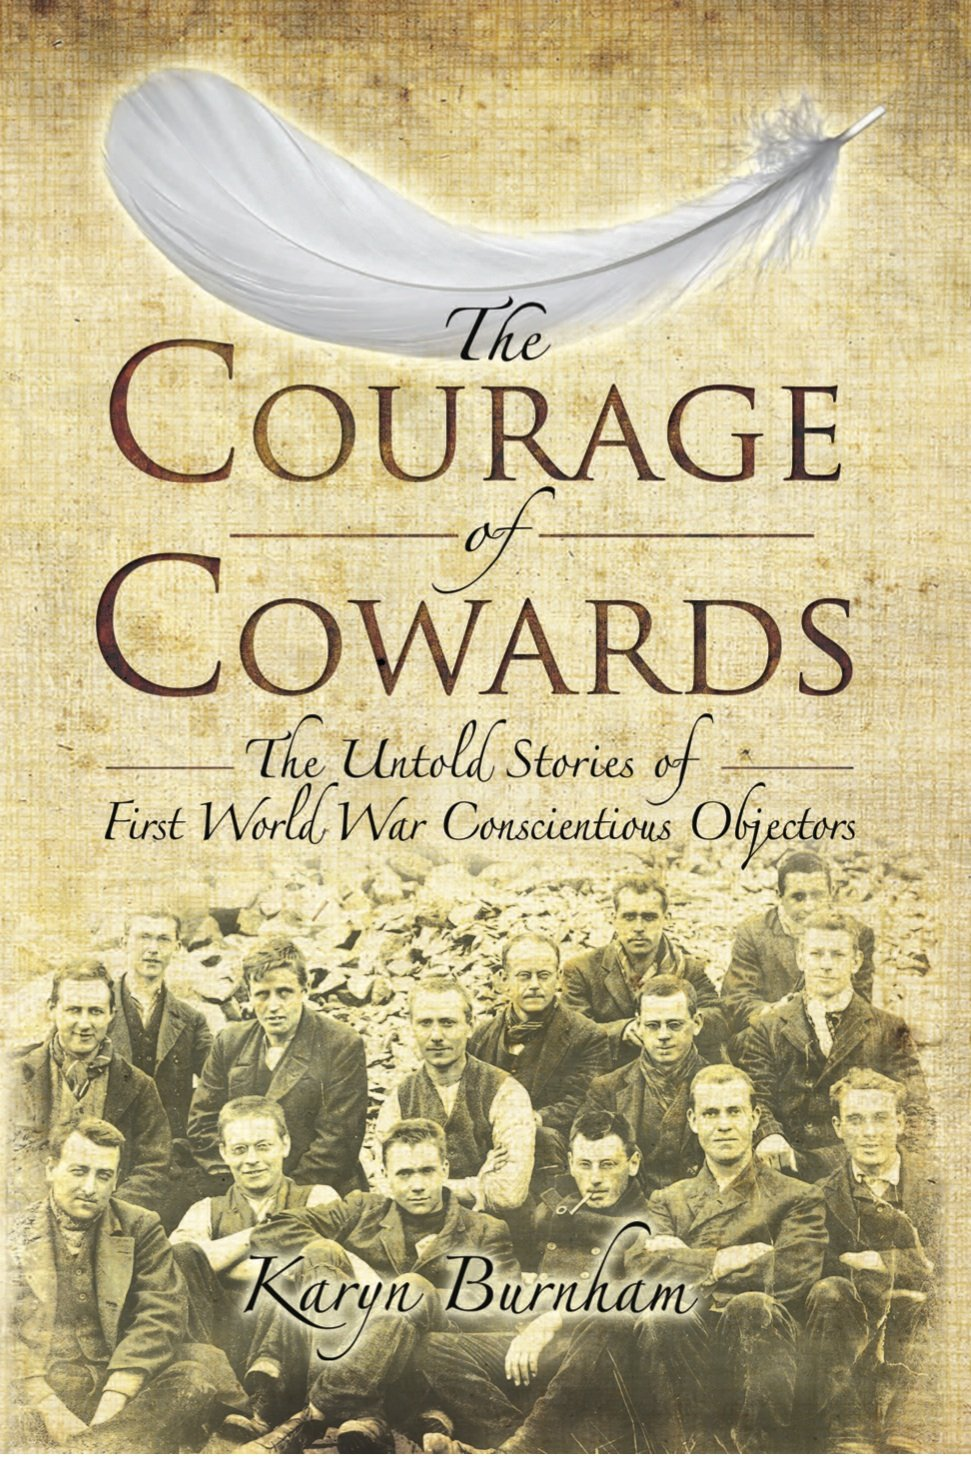 The Courage of Cowards: The Untold Stories of First World War Conscientious Objectors